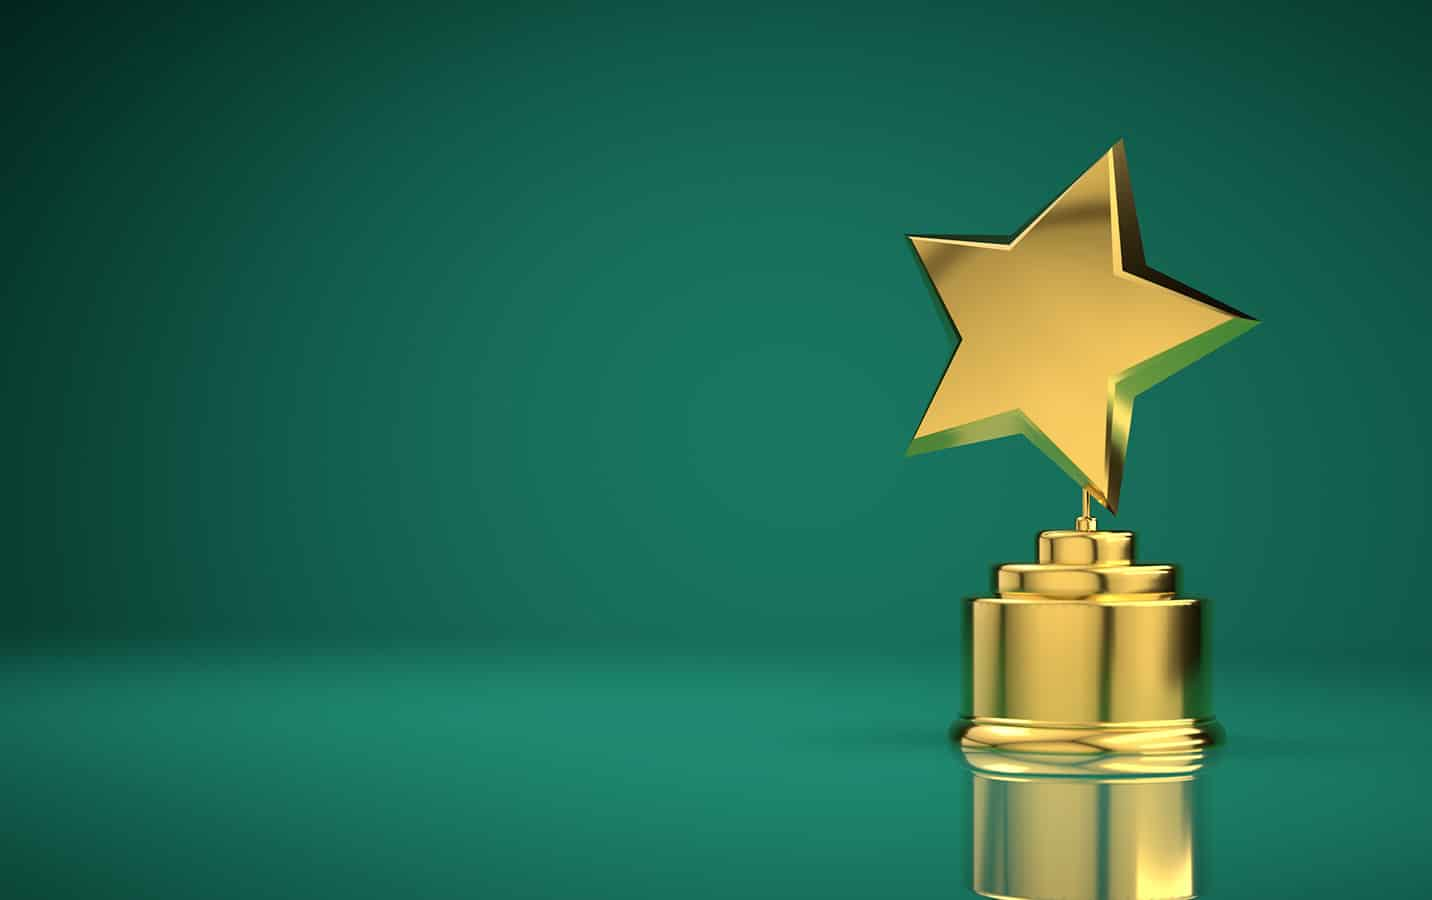 The definition of award criteria [In under 100 words]